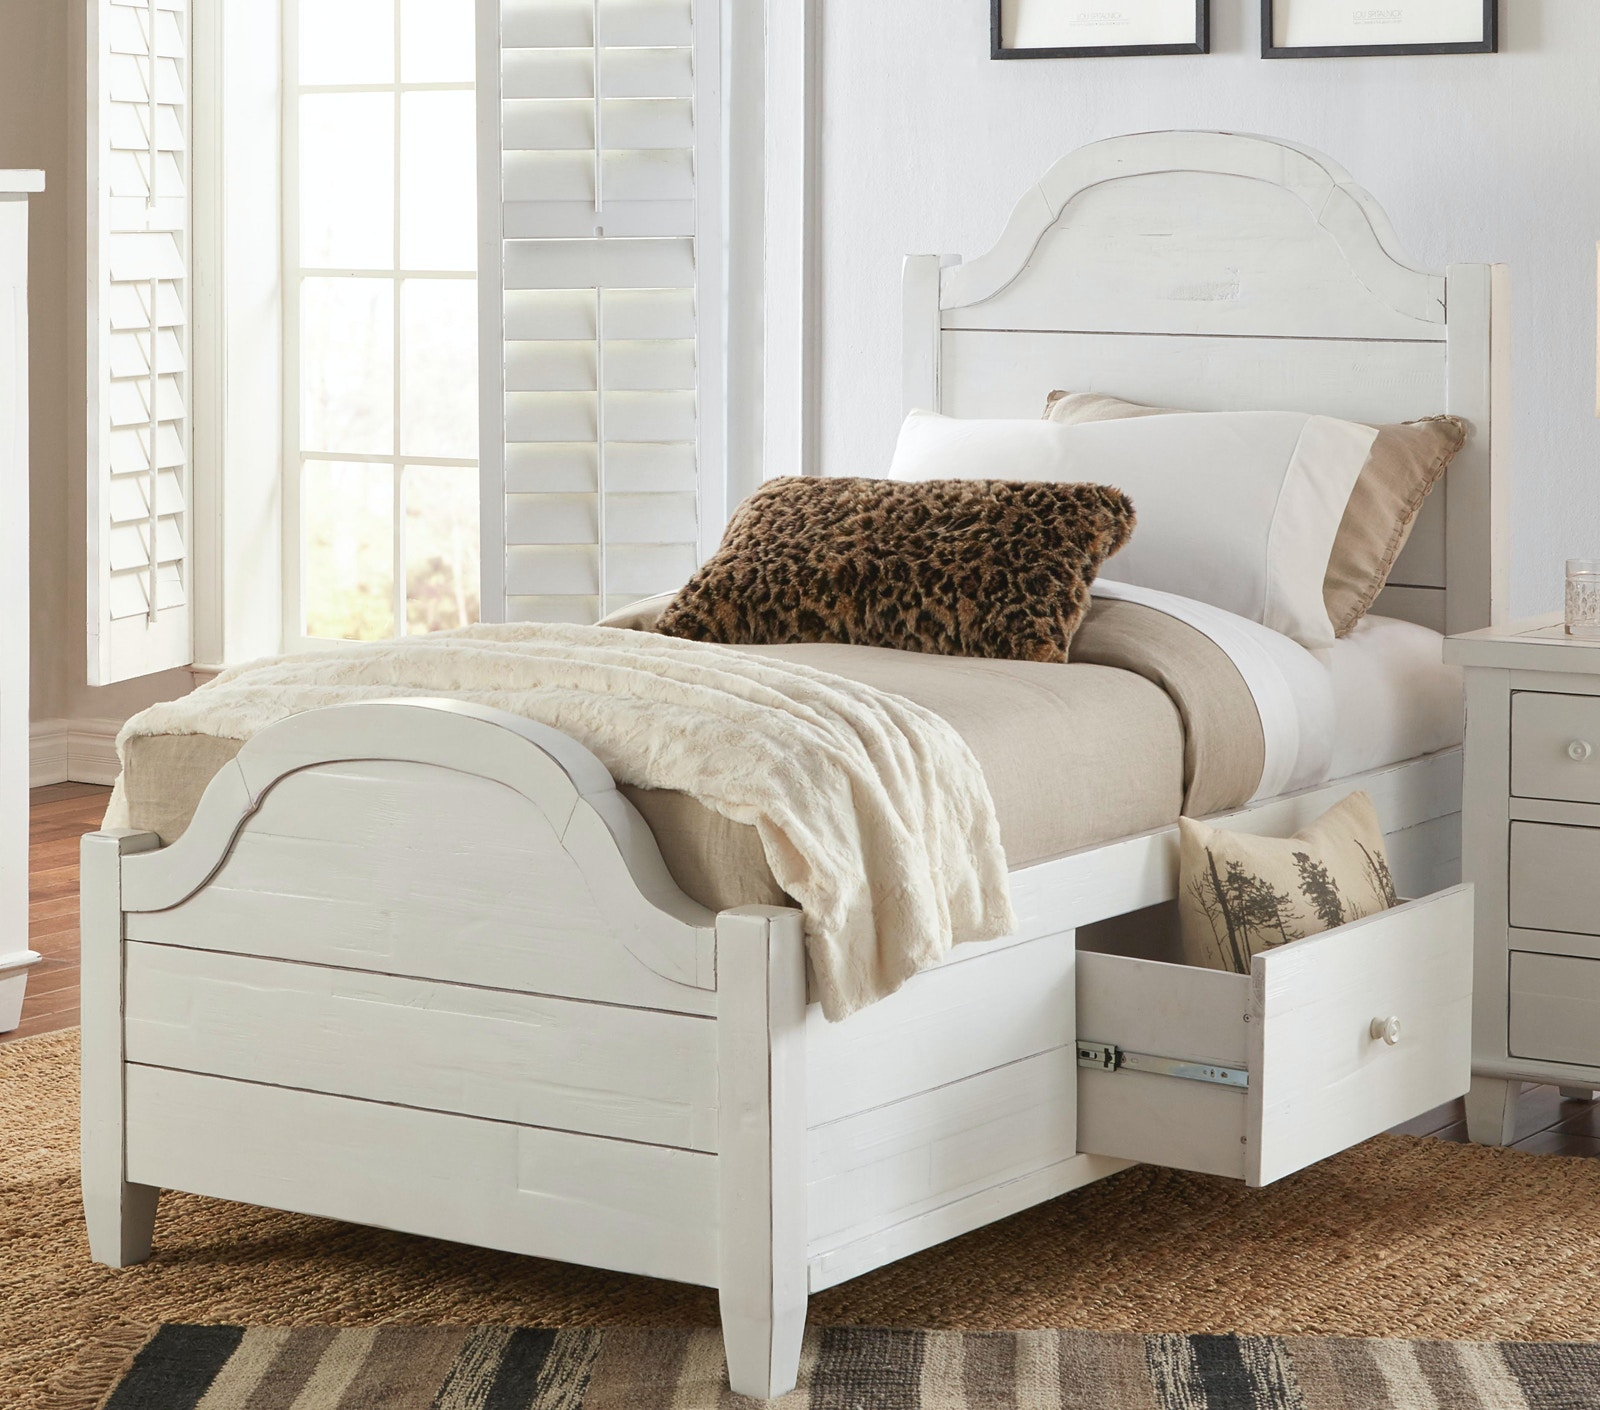 size bed headboard storage sleigh platform number full beds products with aspenhome b item richmond queen